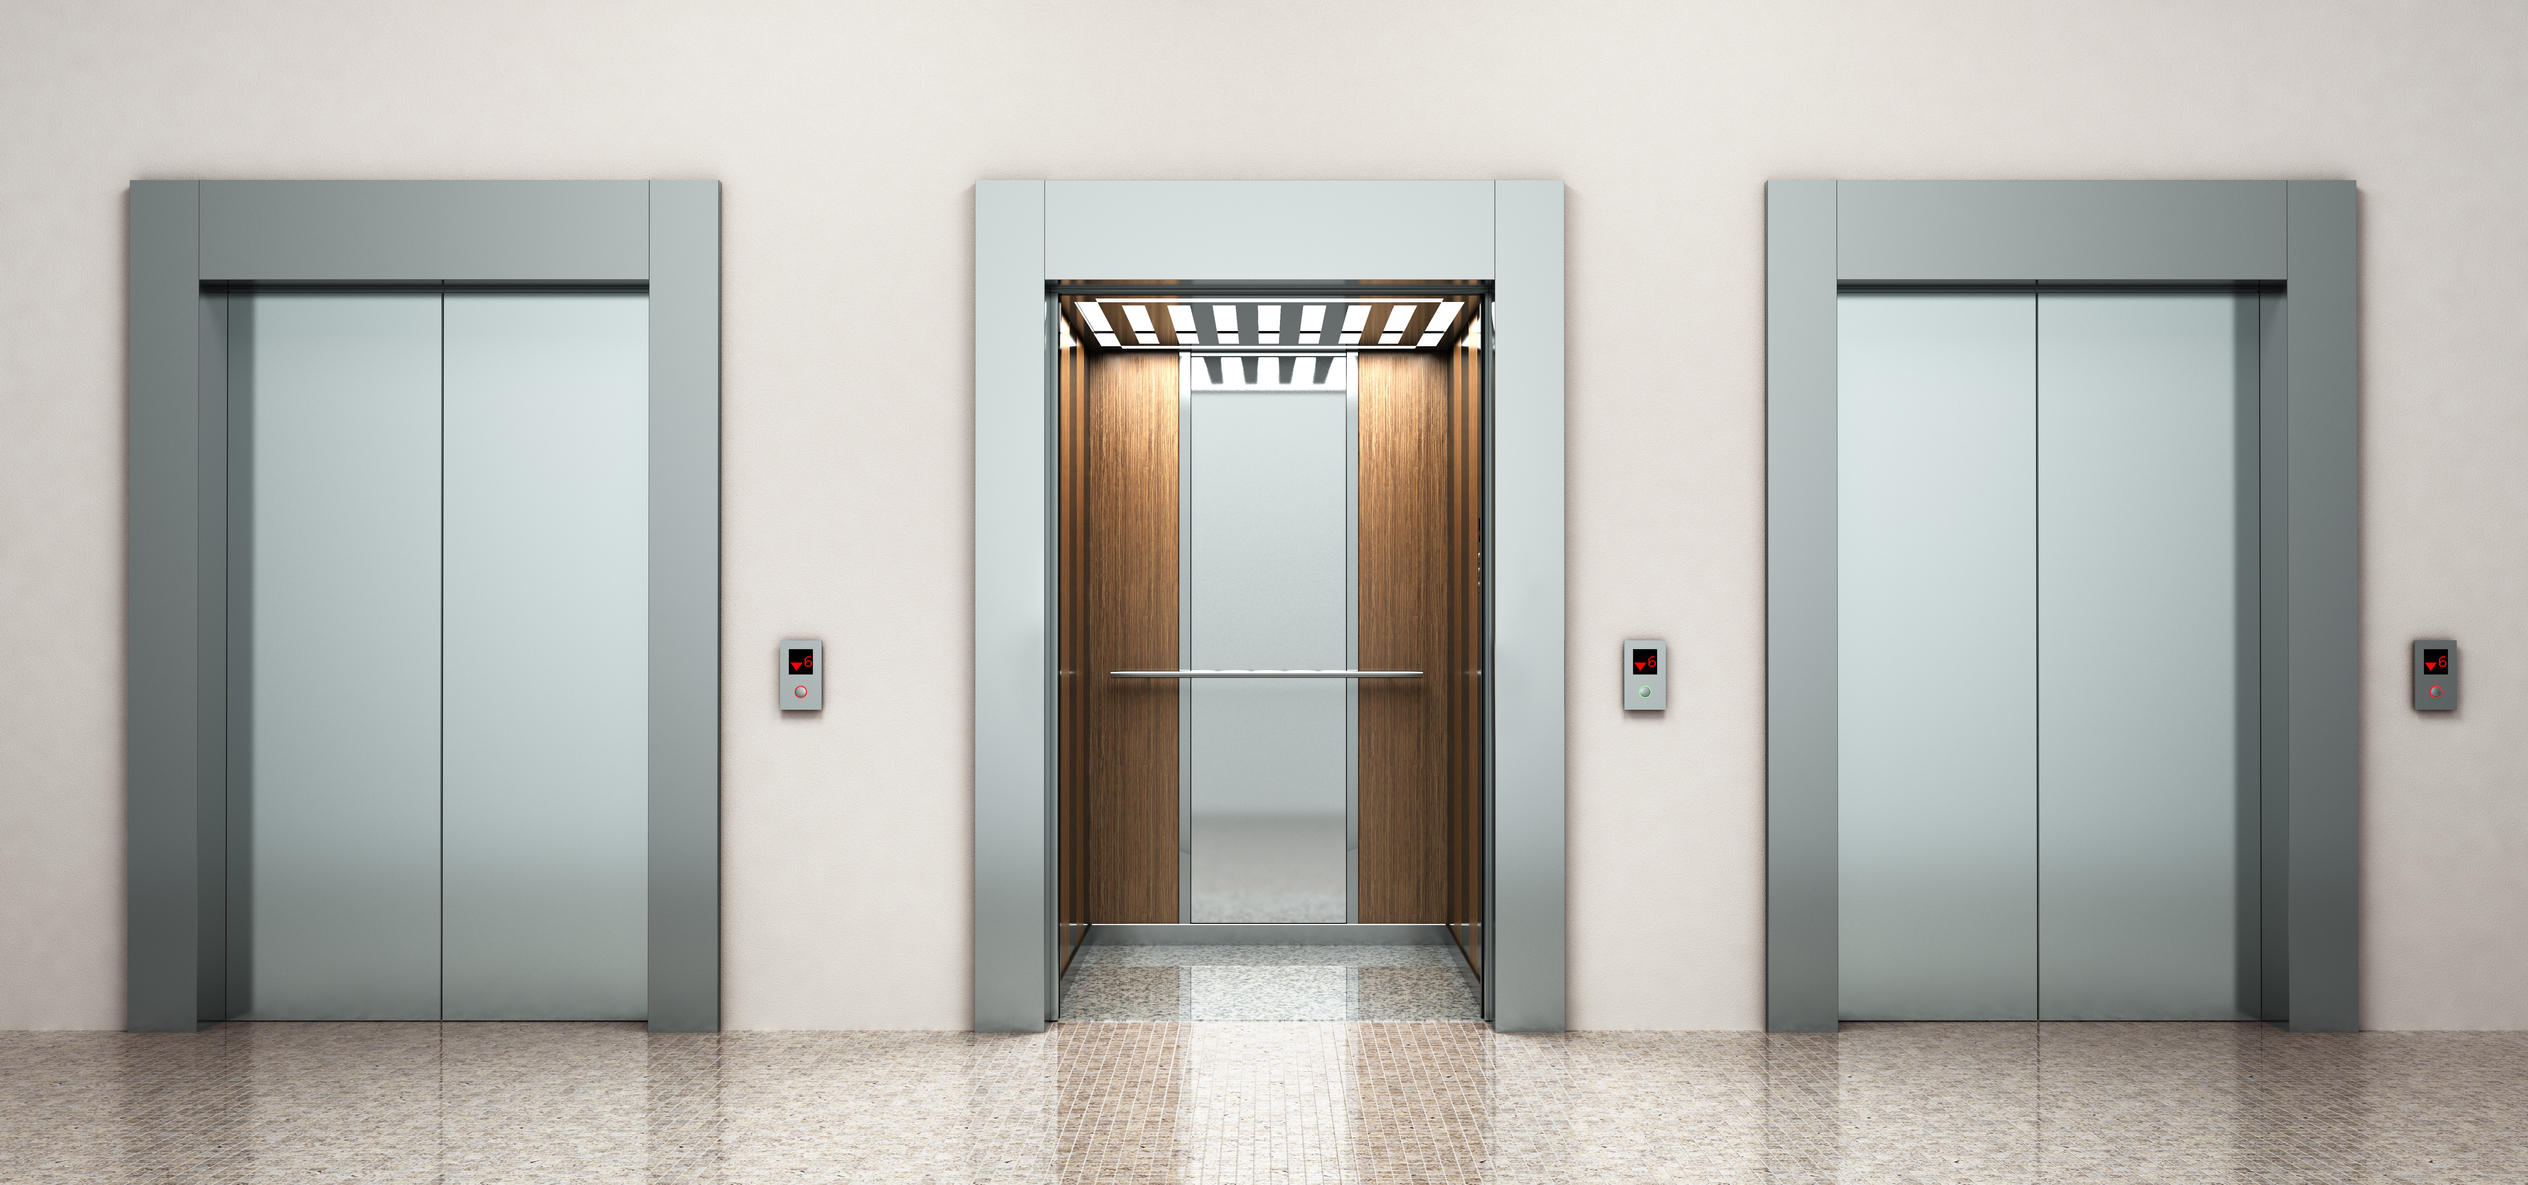 Three elevators, middle elevator has its doors open, while the two on either side are closed